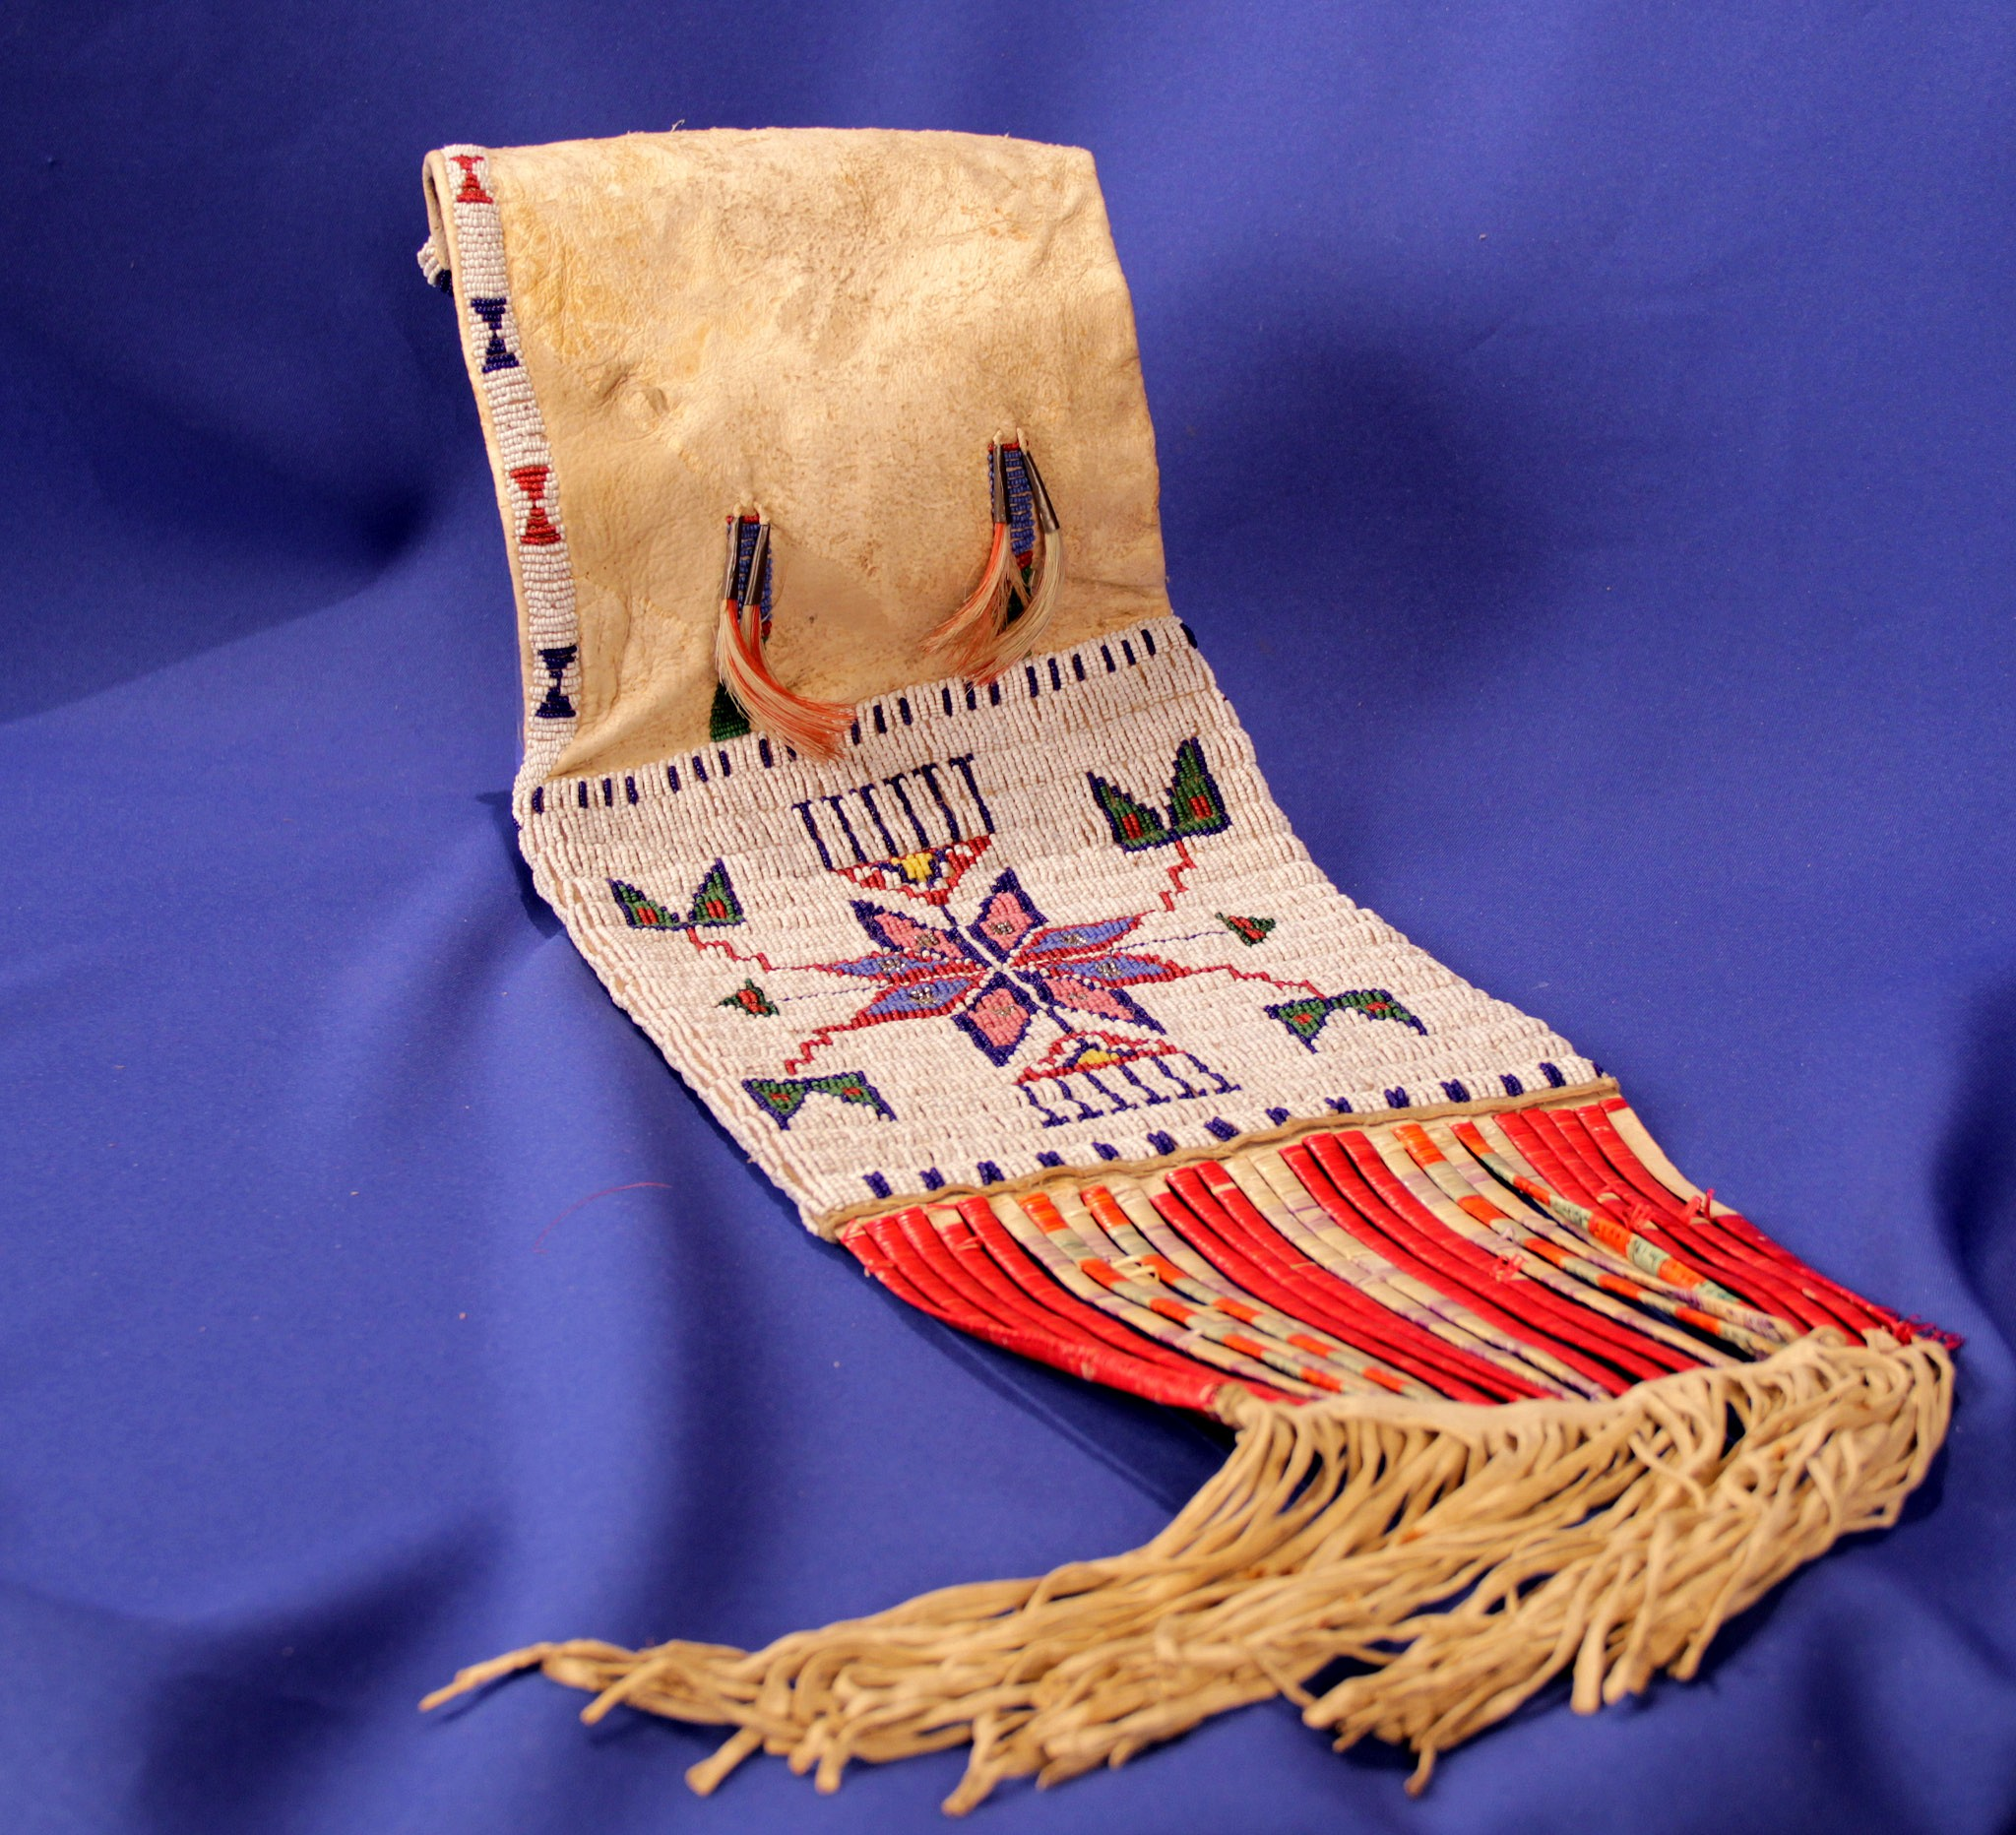 e6cce52faa792 09 - Beadwork | Late 19th c Sioux Quill and Beaded Pipe Bag, c ...